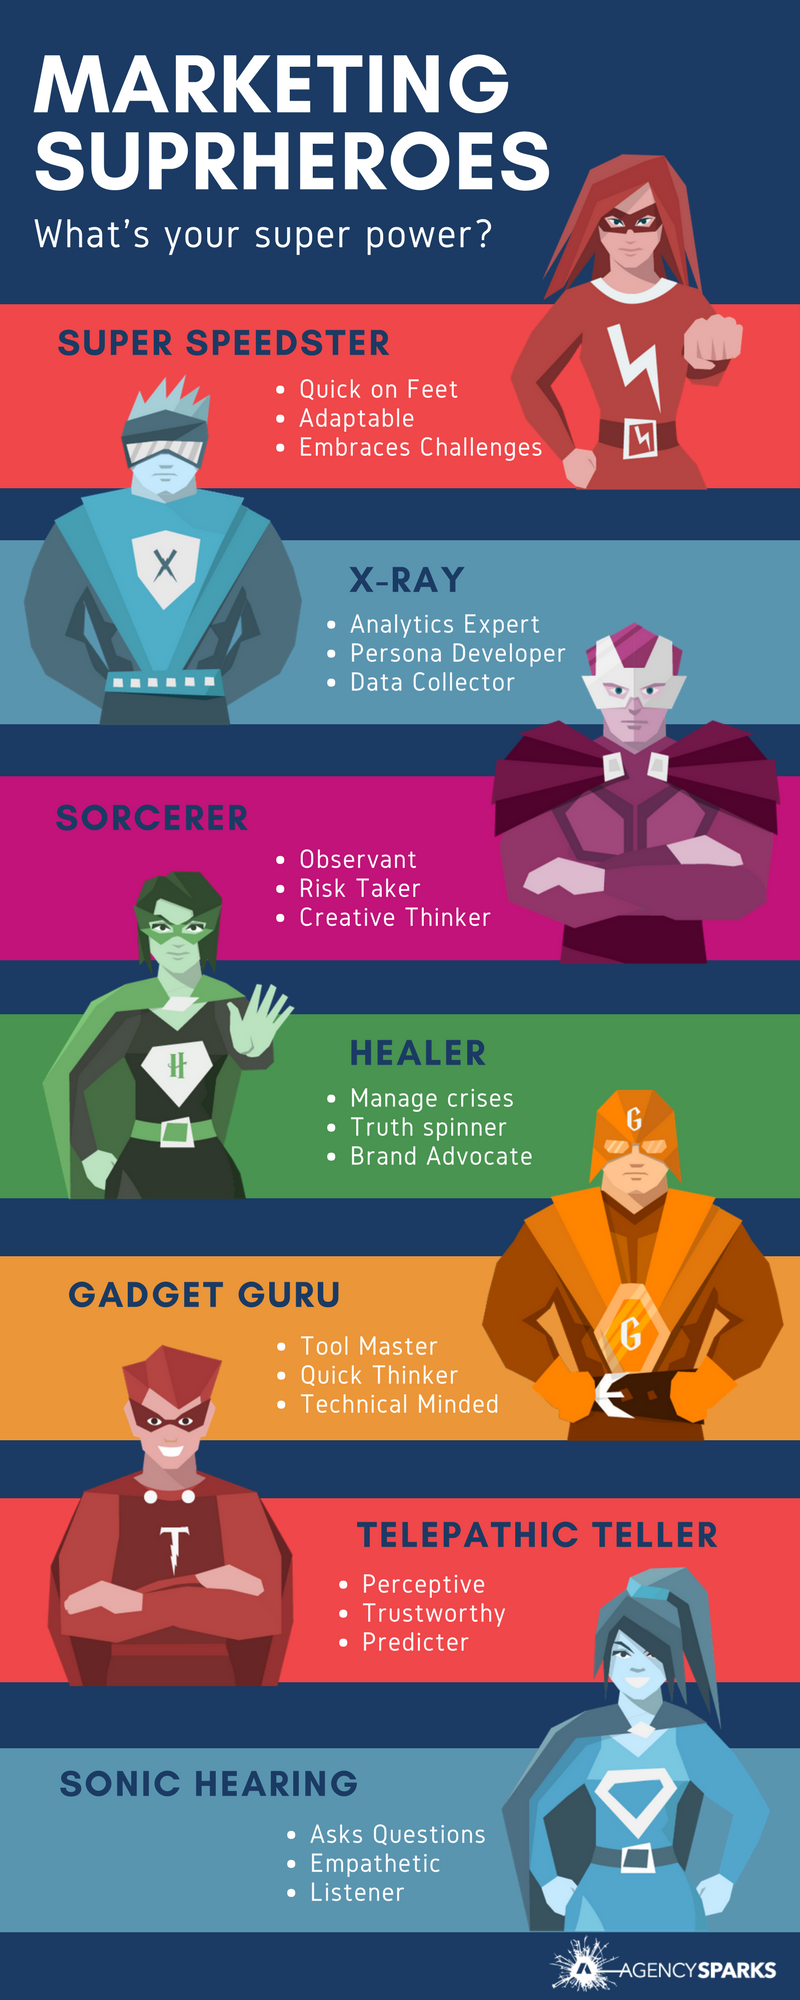 Marketing super heroes come in all shapes and sizes. Each marketer offers their expertise in different, specialized forms. They may be more empathetic or analytical, but, either way, they are customer focused.